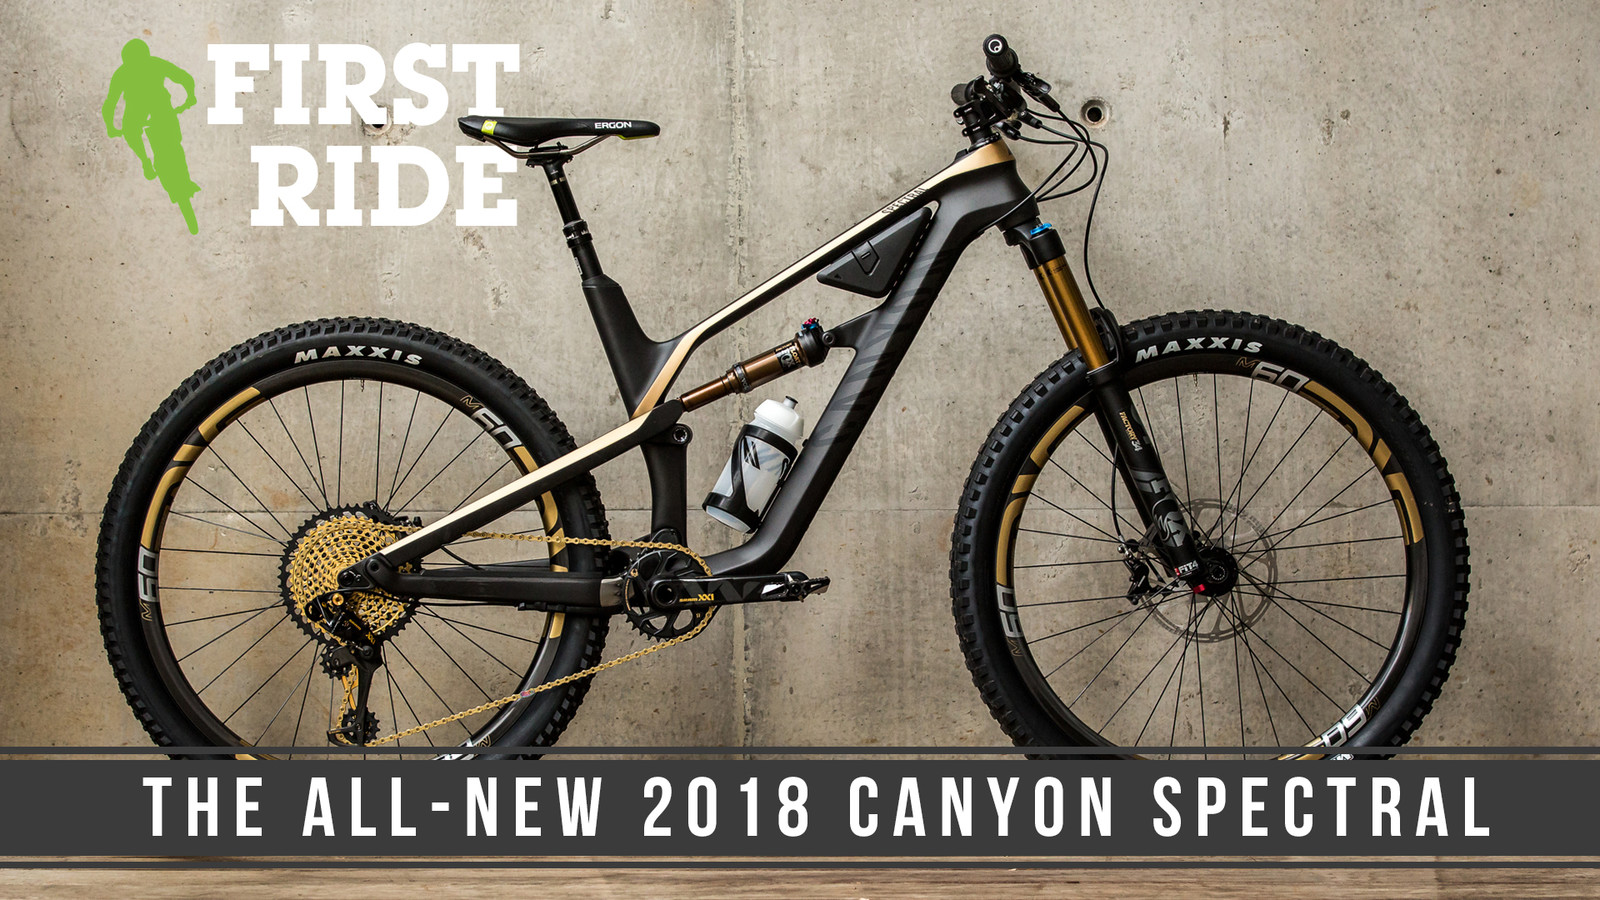 First Ride: The All-New 2018 Canyon Spectral